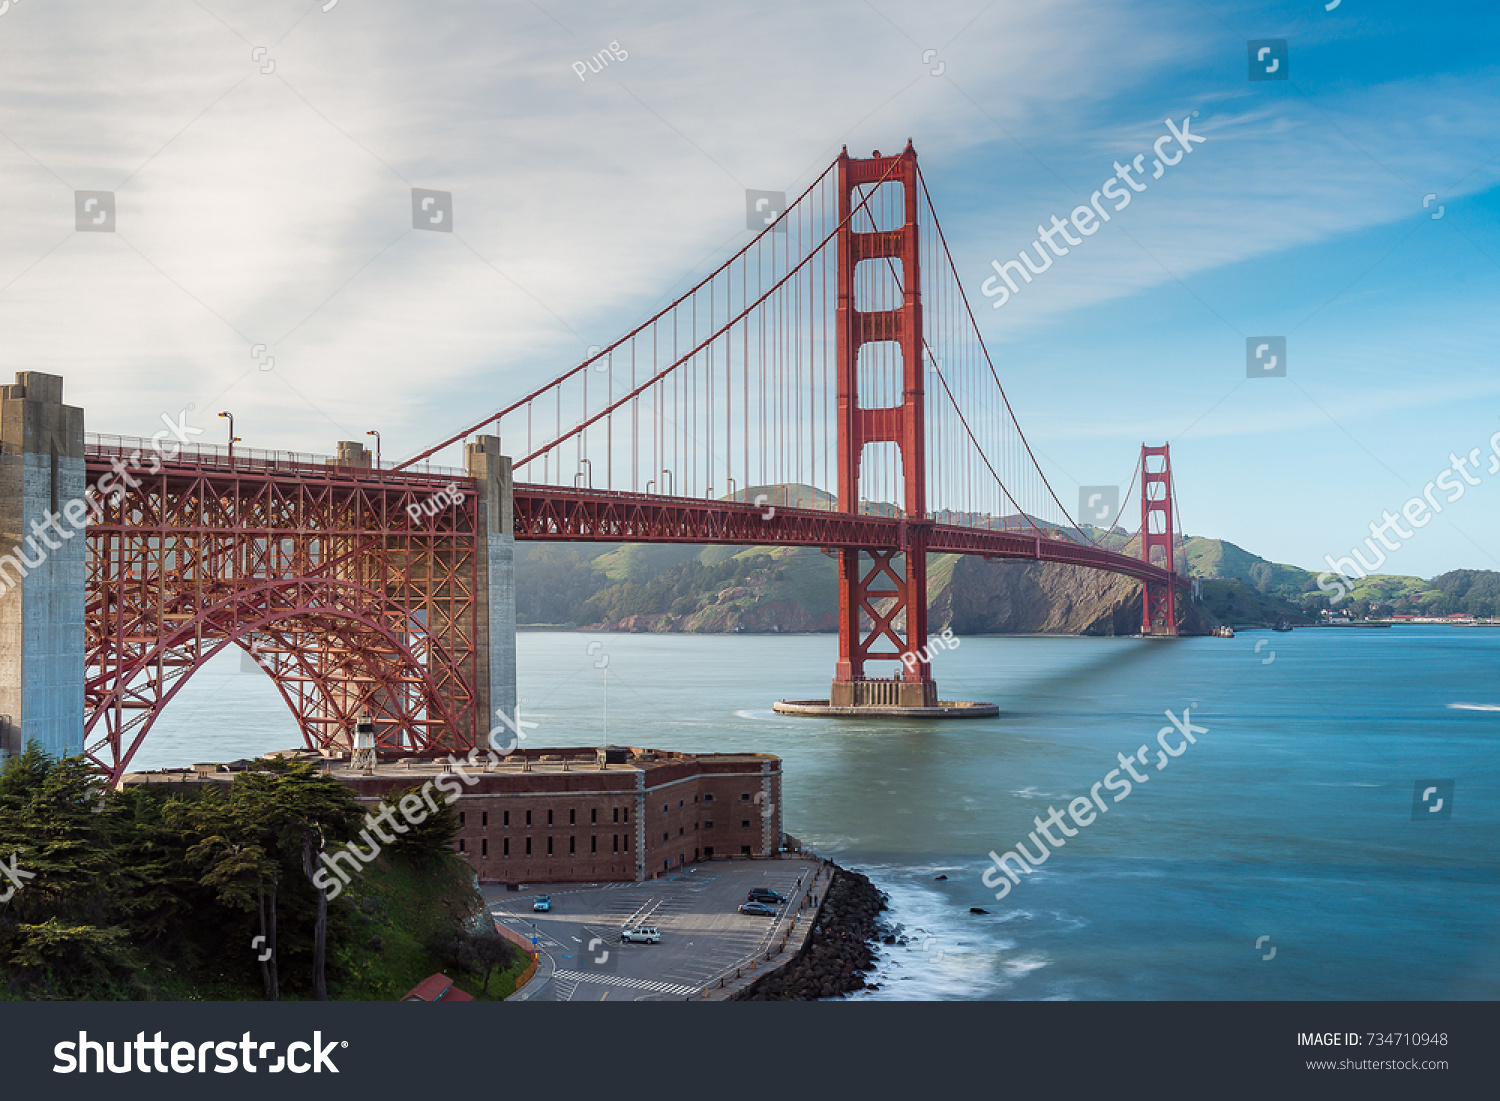 famous architecture in the world. beautiful golden gate bridge, the world famous architecture of san francisco in k